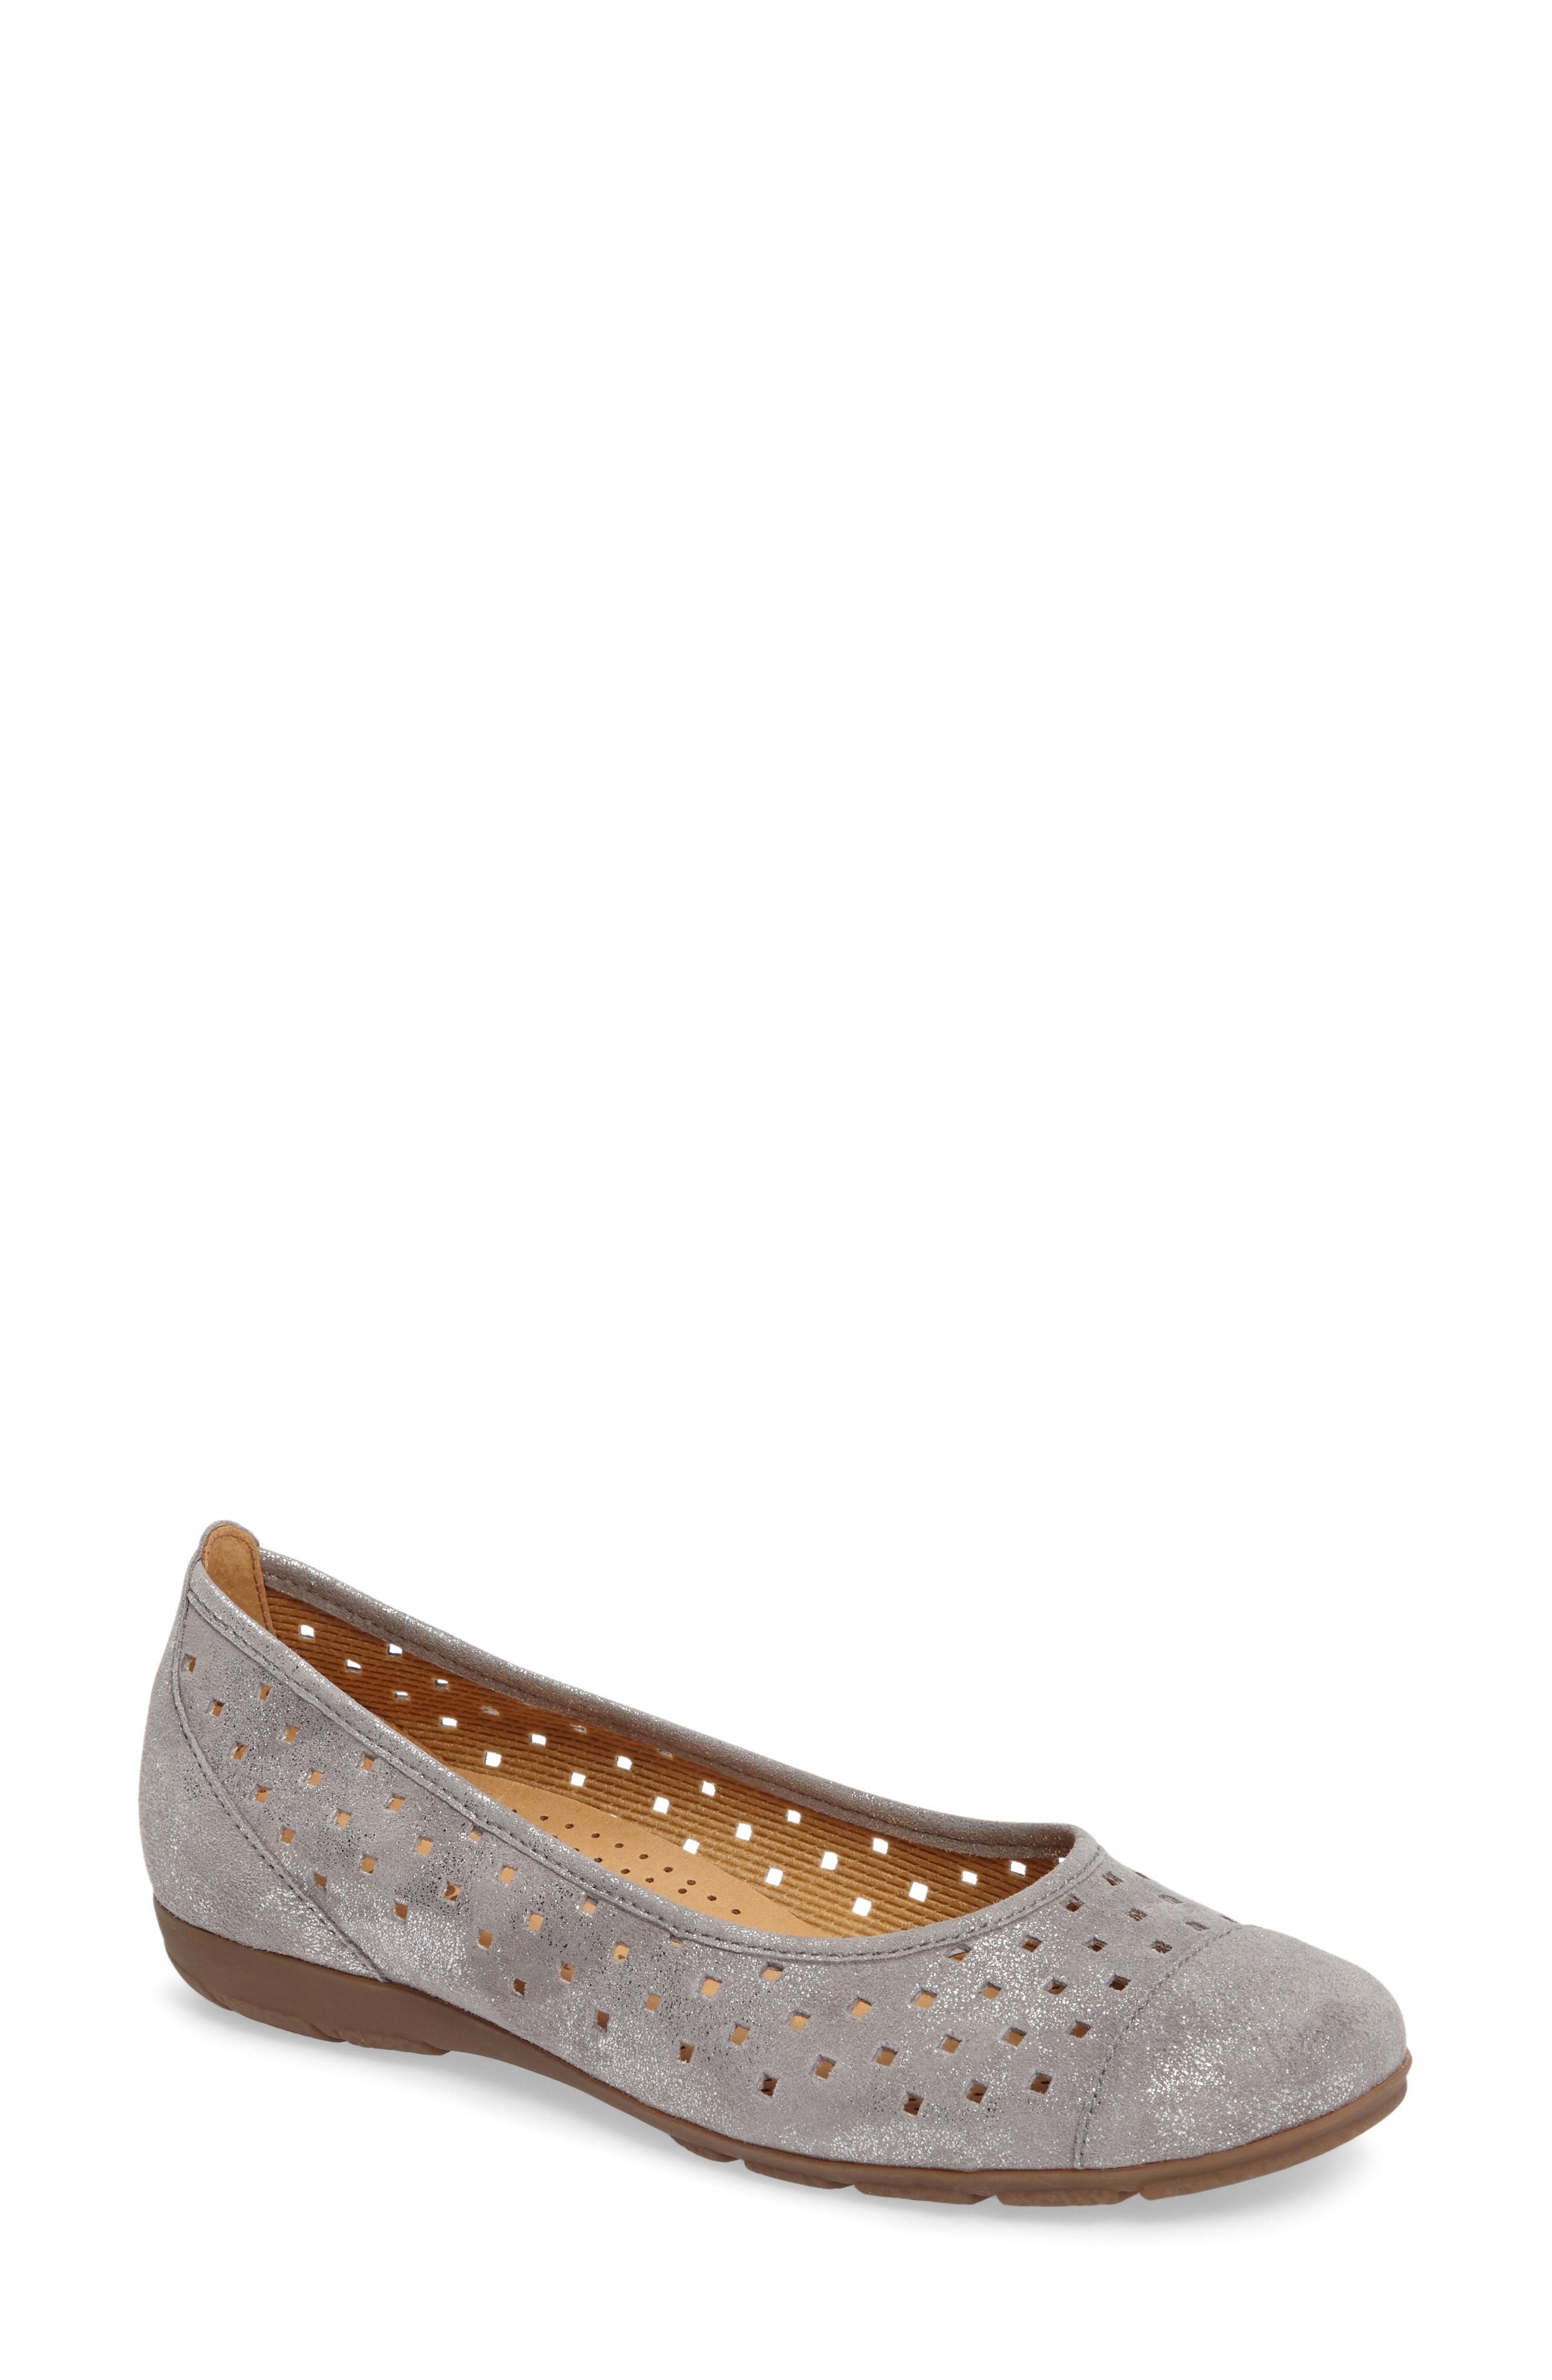 Cap Toe Ballet Flat,                             Main thumbnail 2, color,